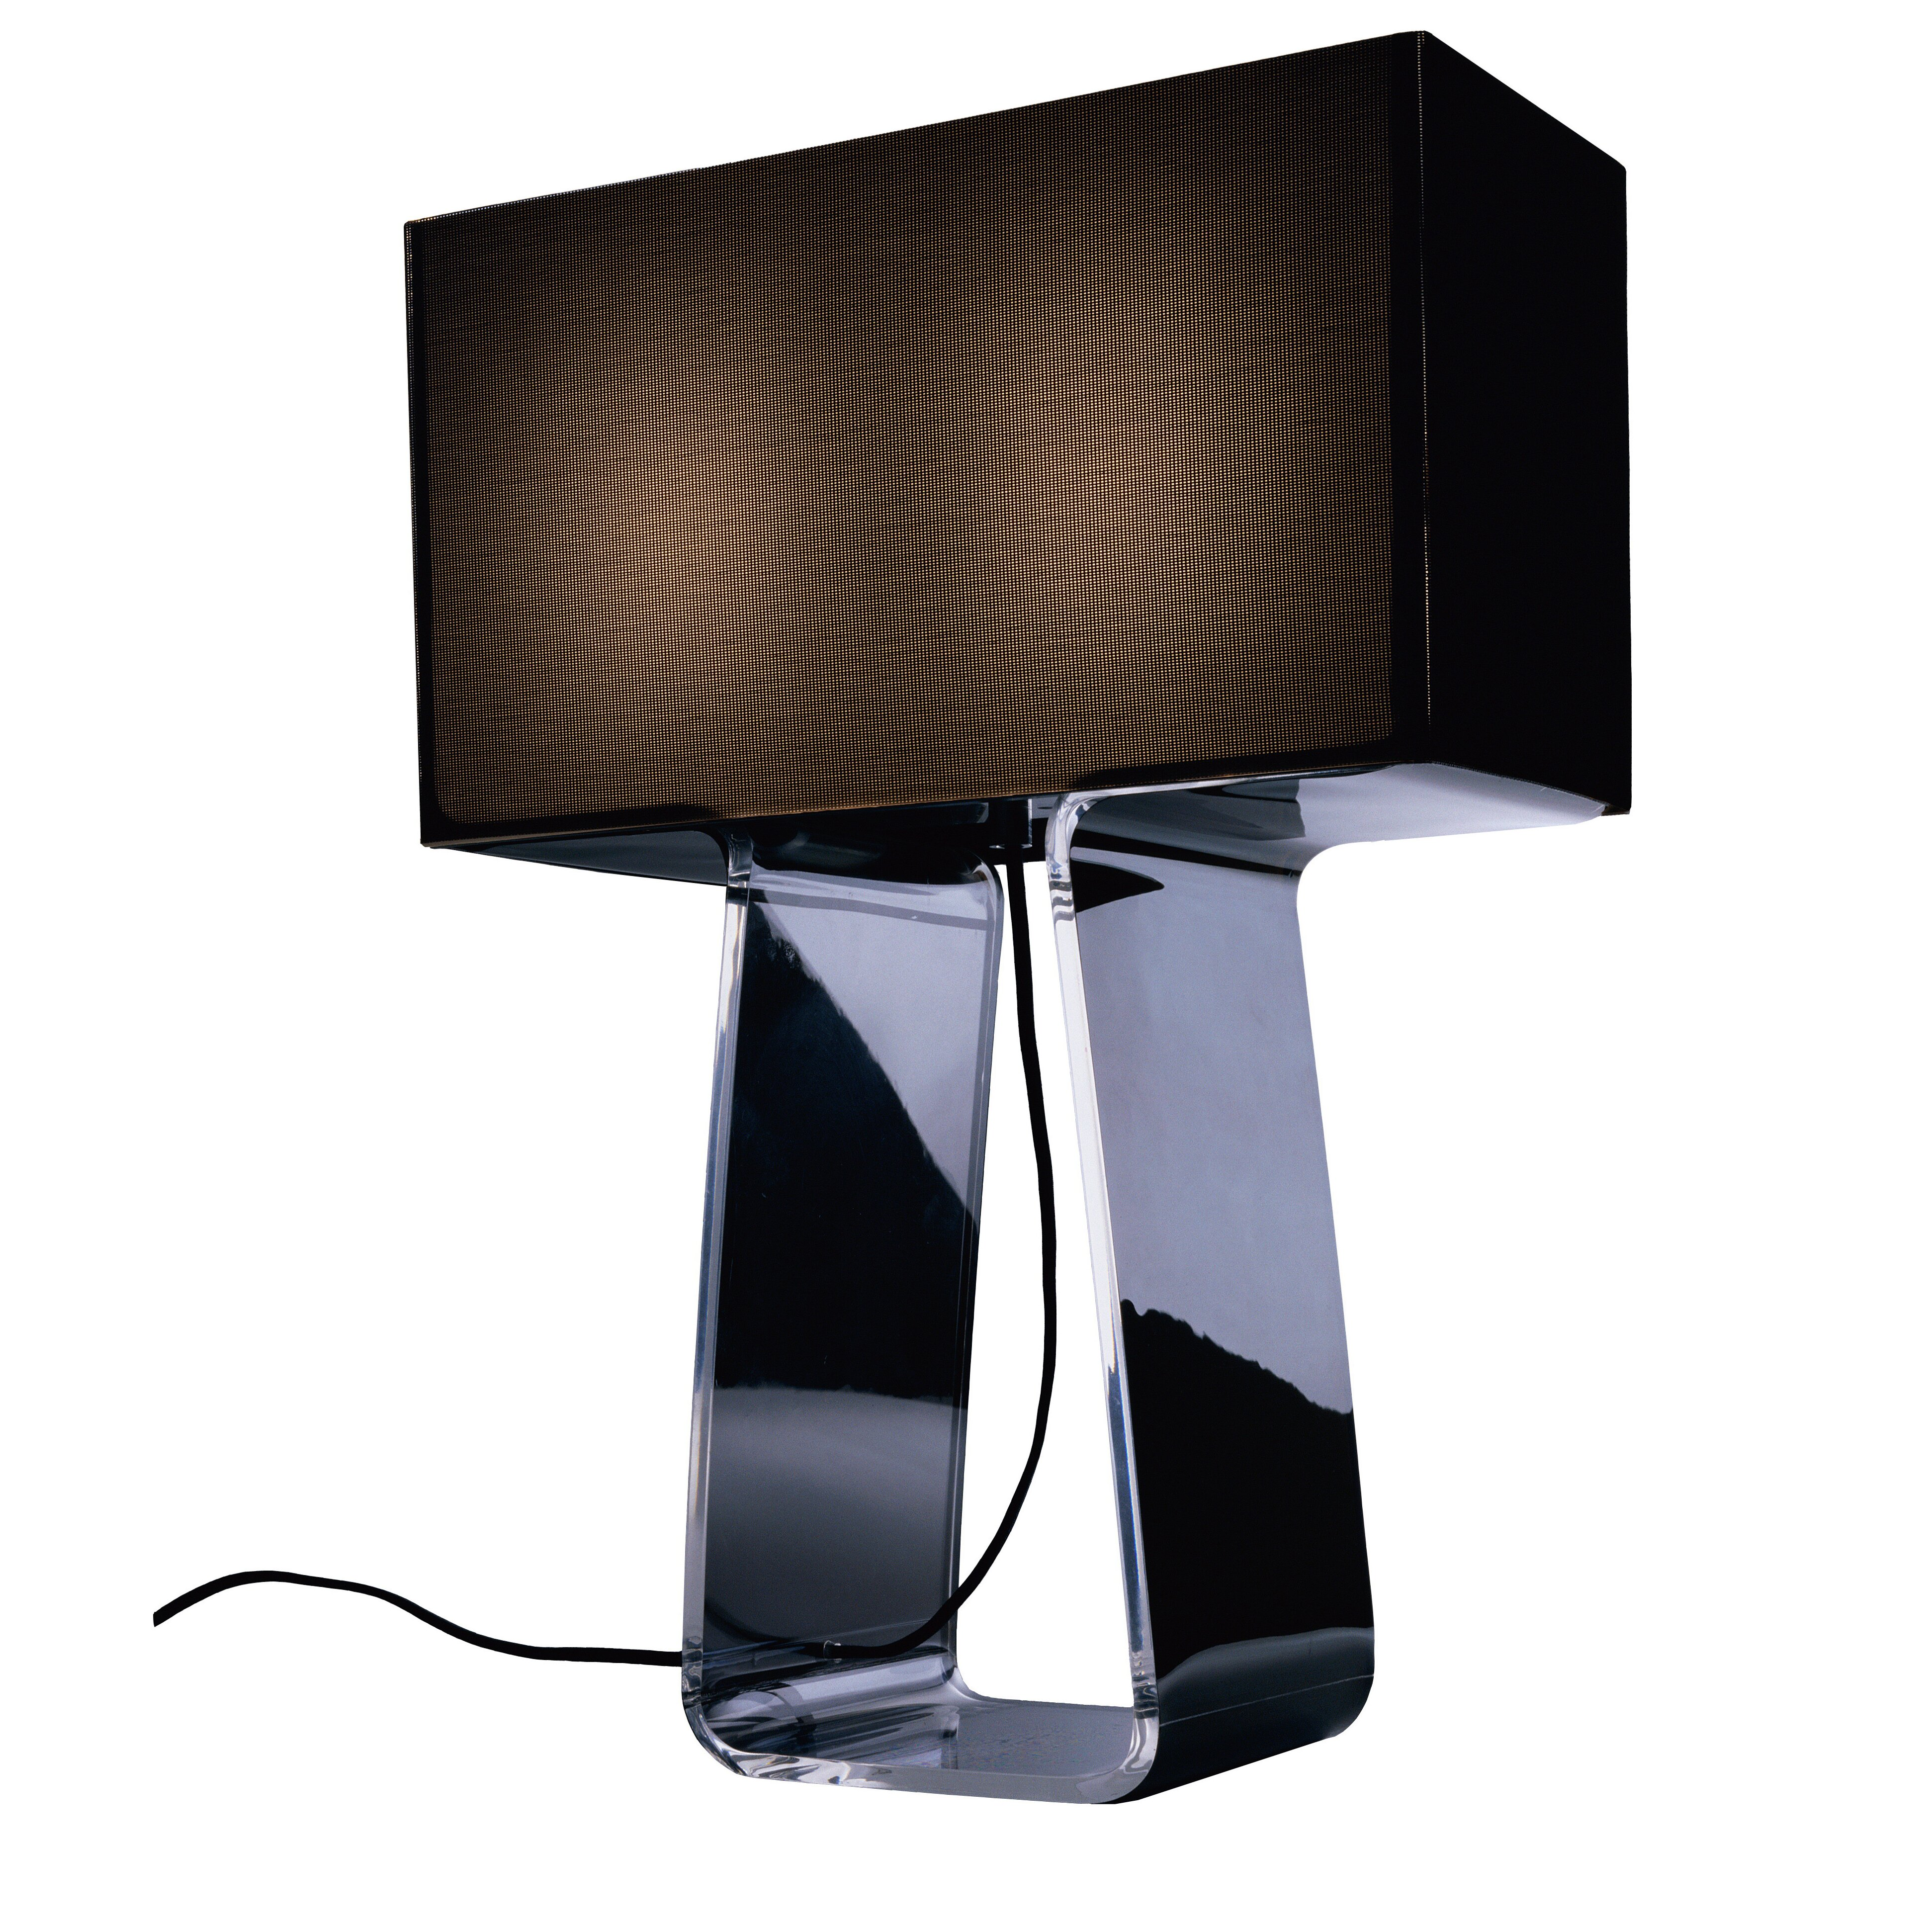 Pablo Designs Tube Top Table Lamp With Rectangular Shade